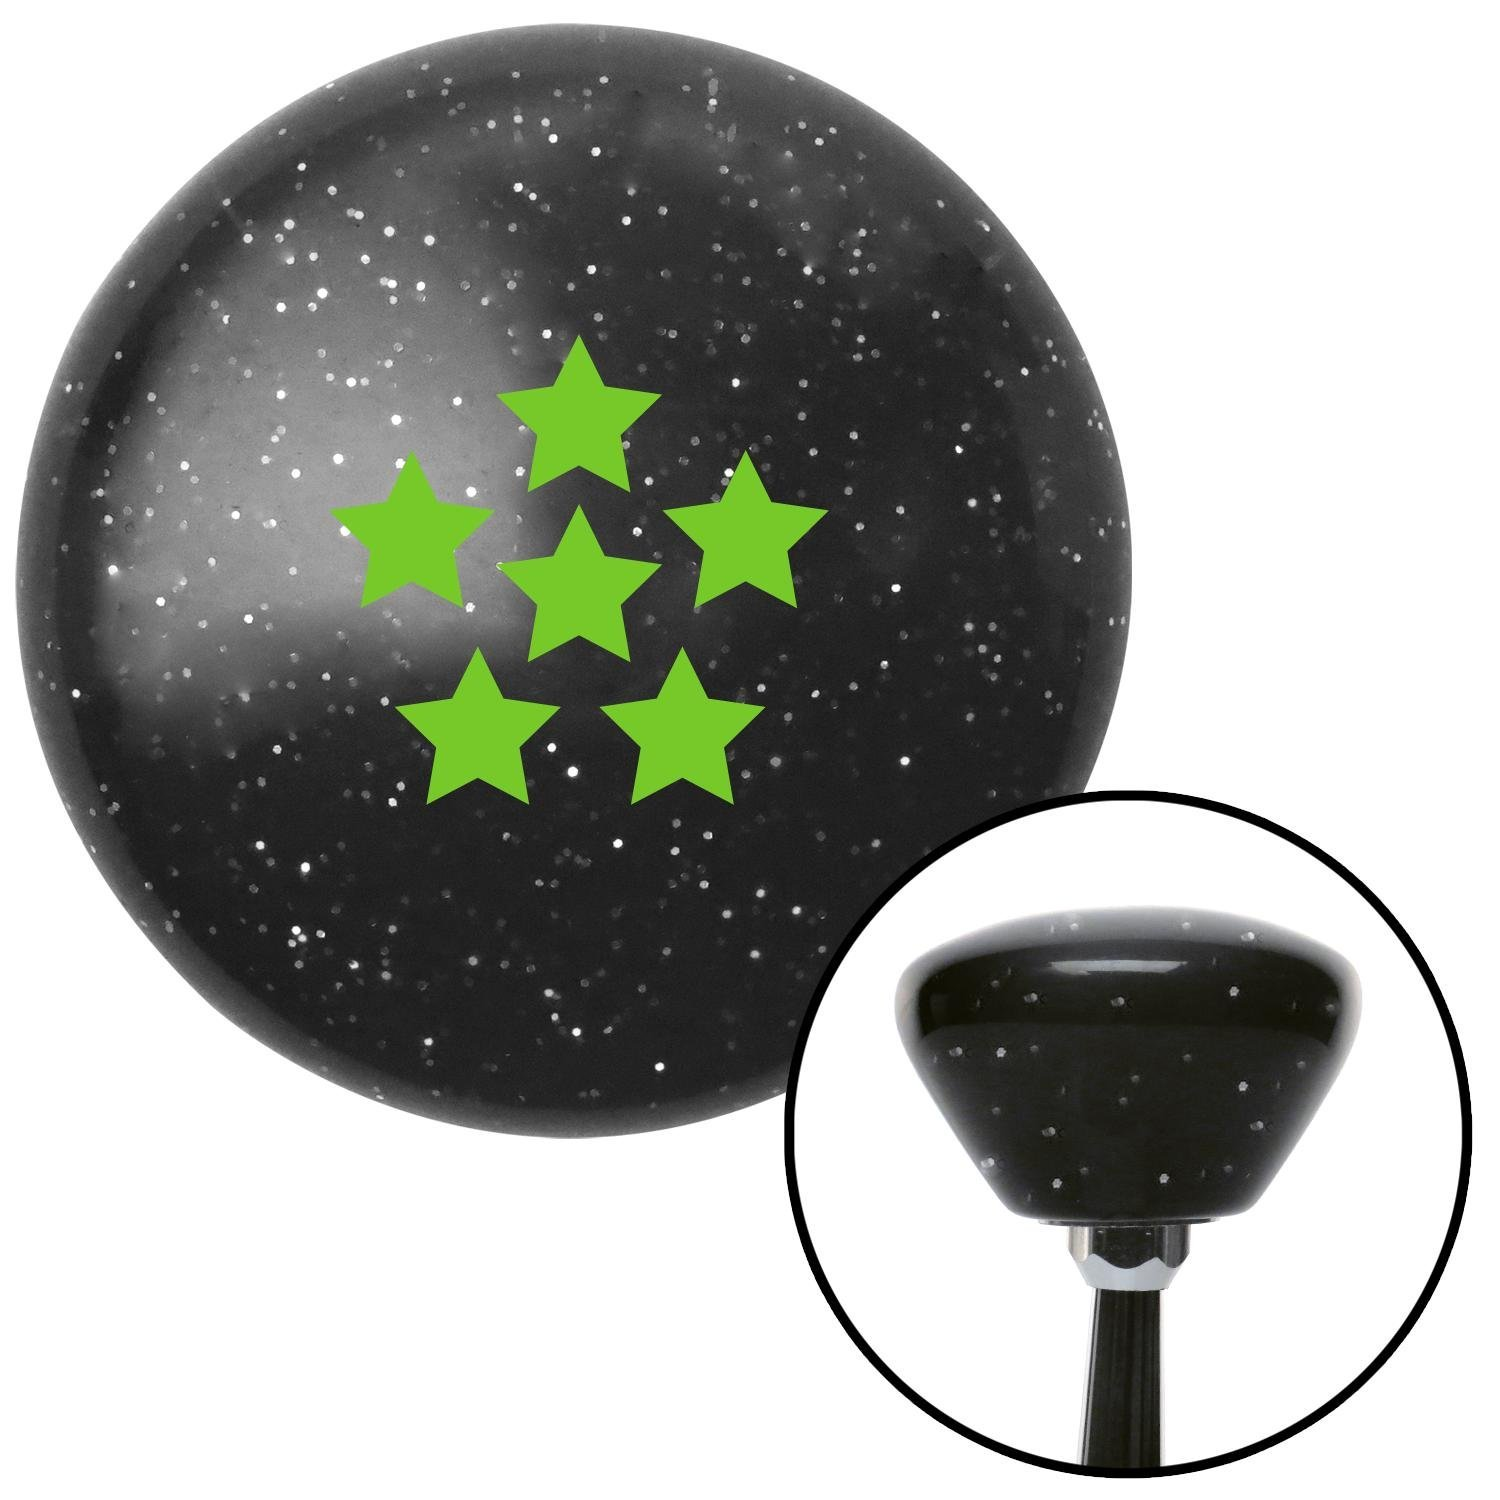 American Shifter 175960 Black Retro Metal Flake Shift Knob with M16 x 1.5 Insert Green Dragon Ball Z - 6 Star